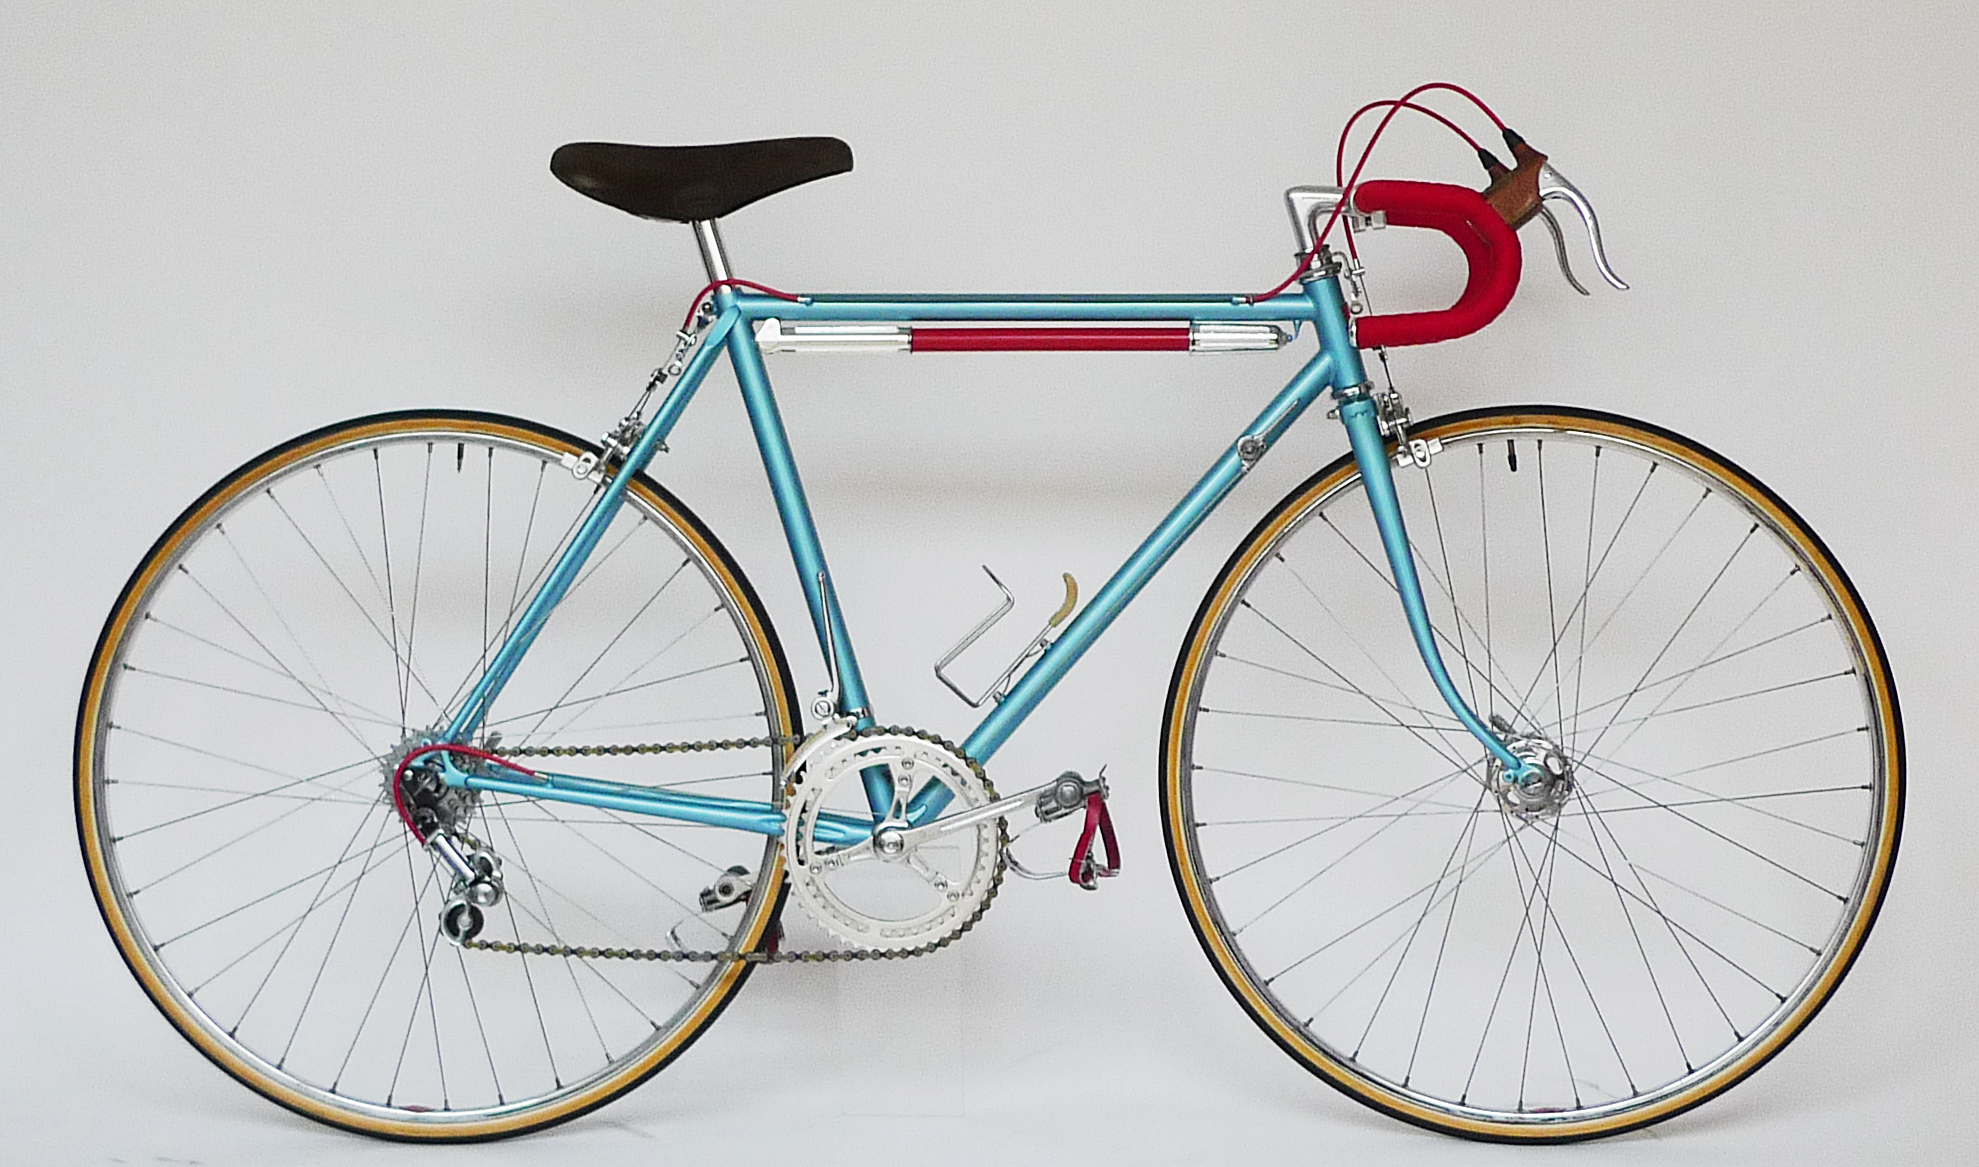 Restored/Alps Randonneur/Mr .Deguri from Kyoto/2014.12.21